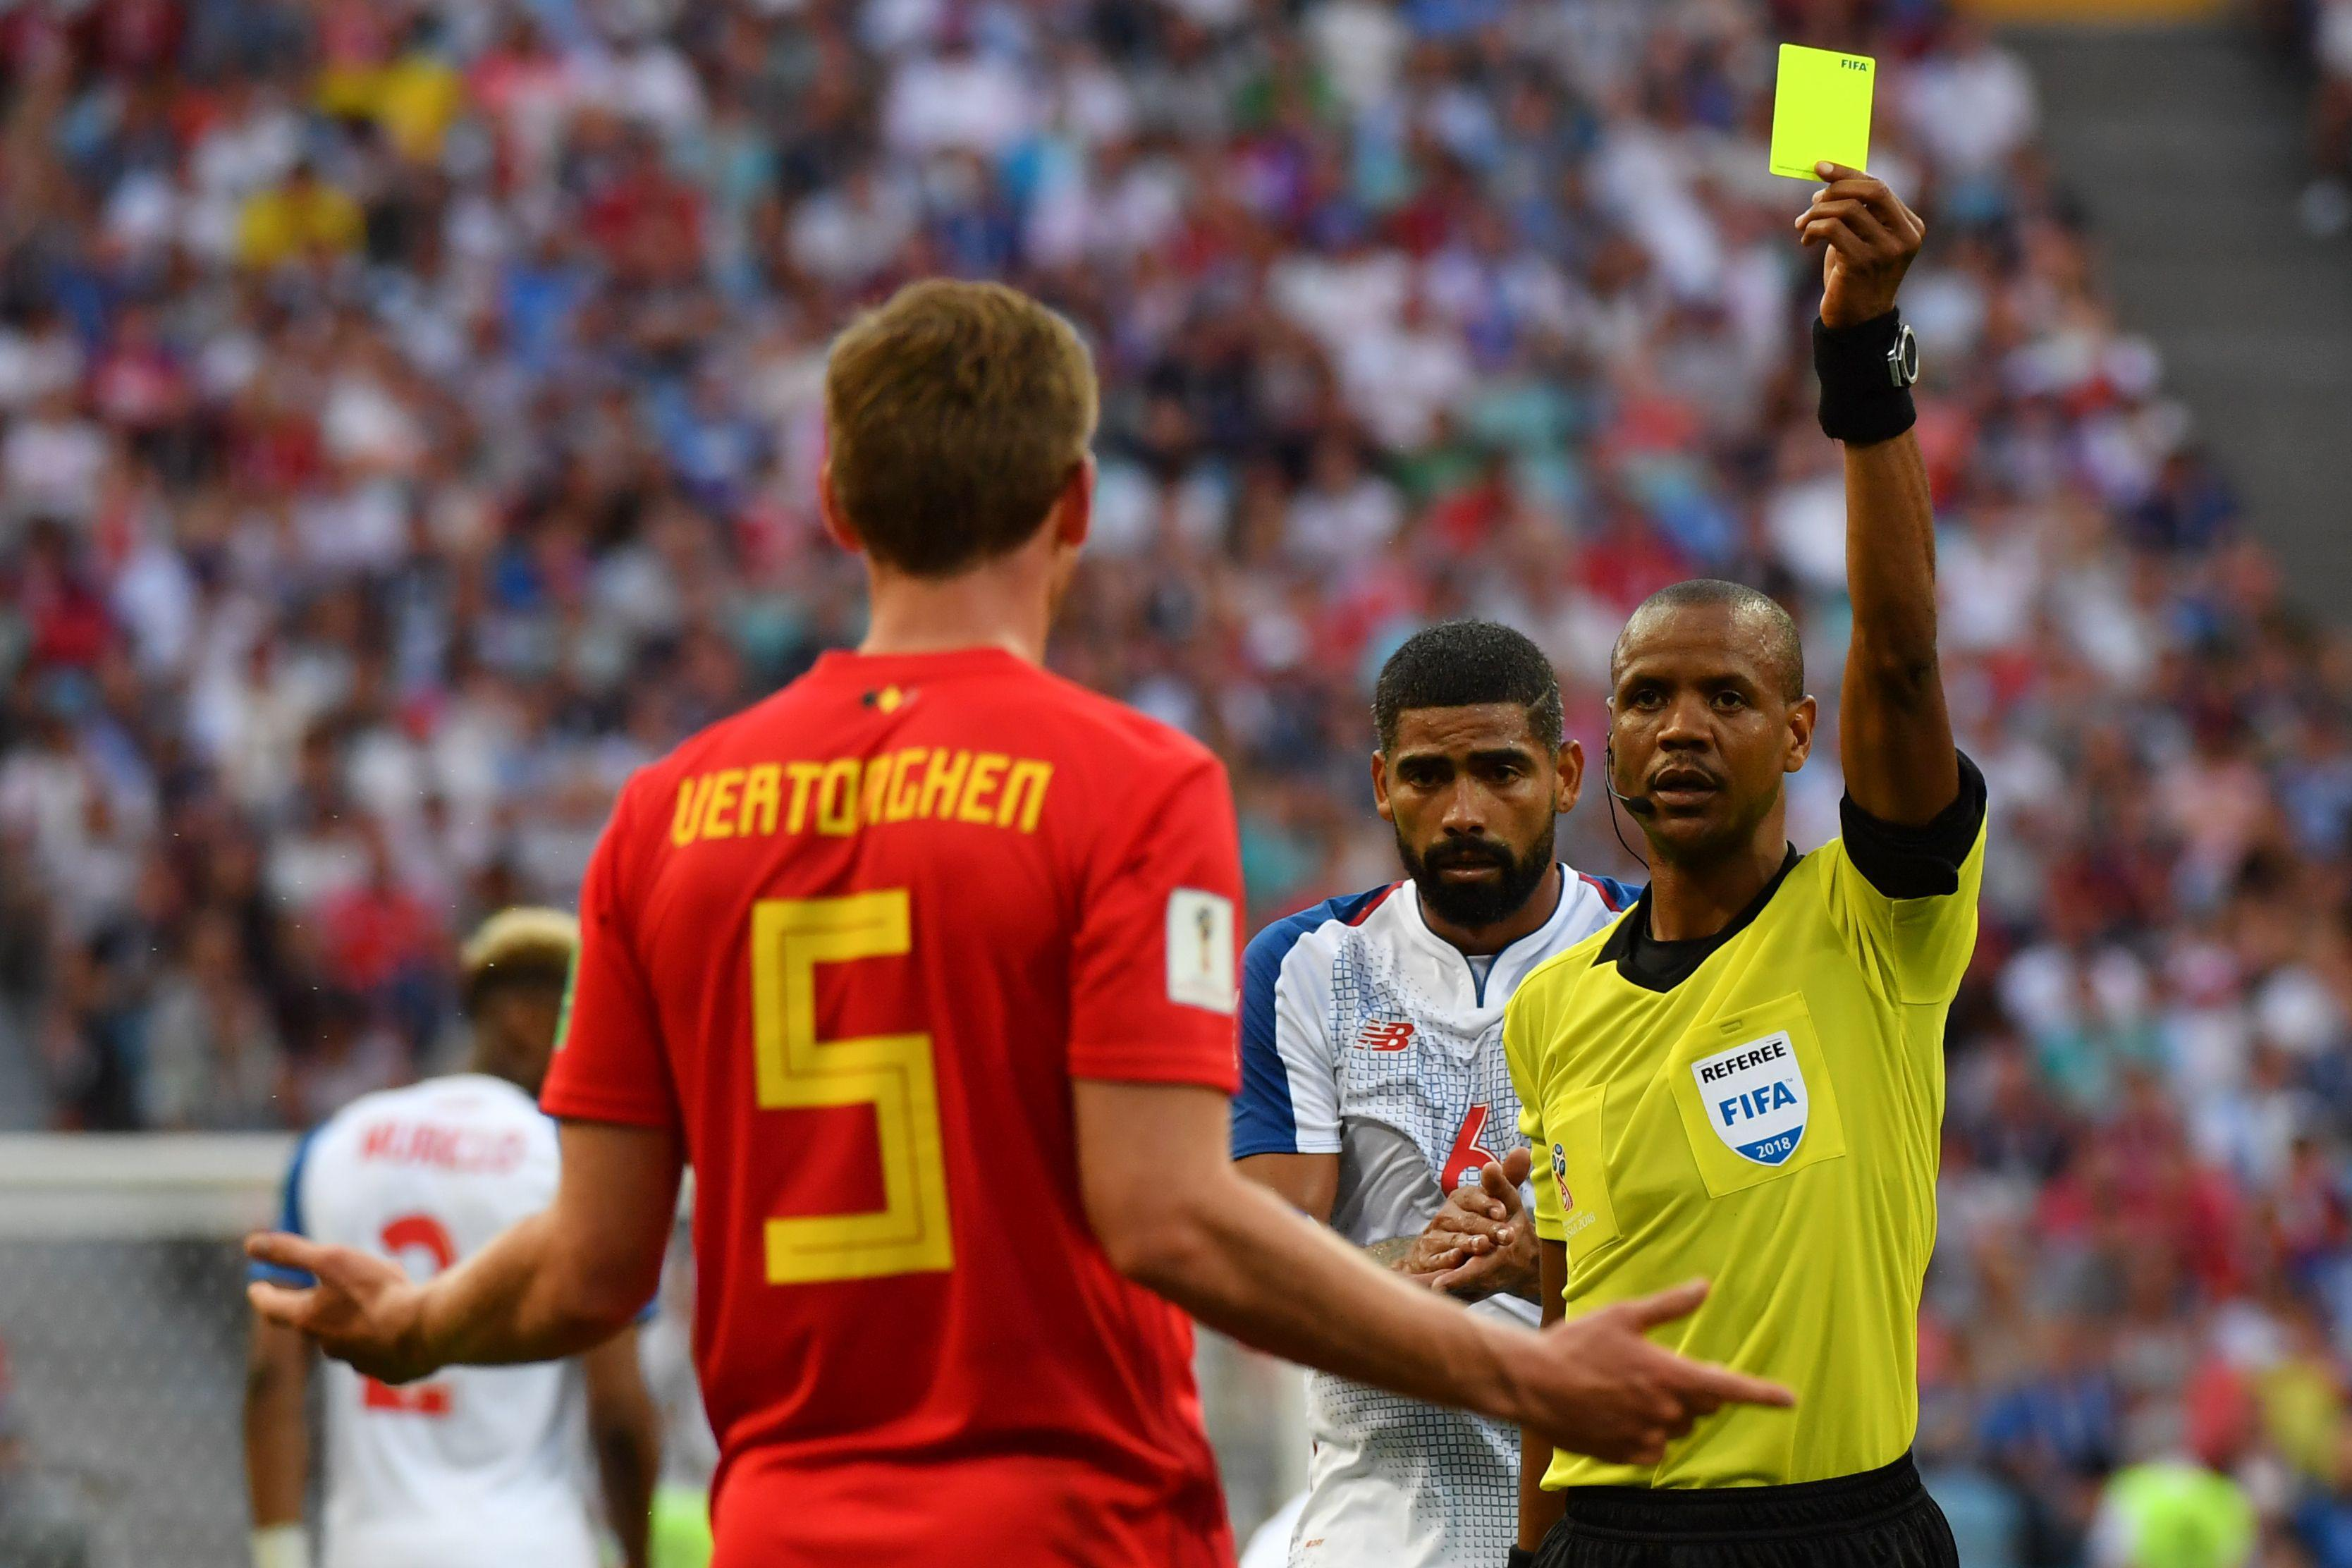 Photos of the world cup soccer game rules tiebreaker